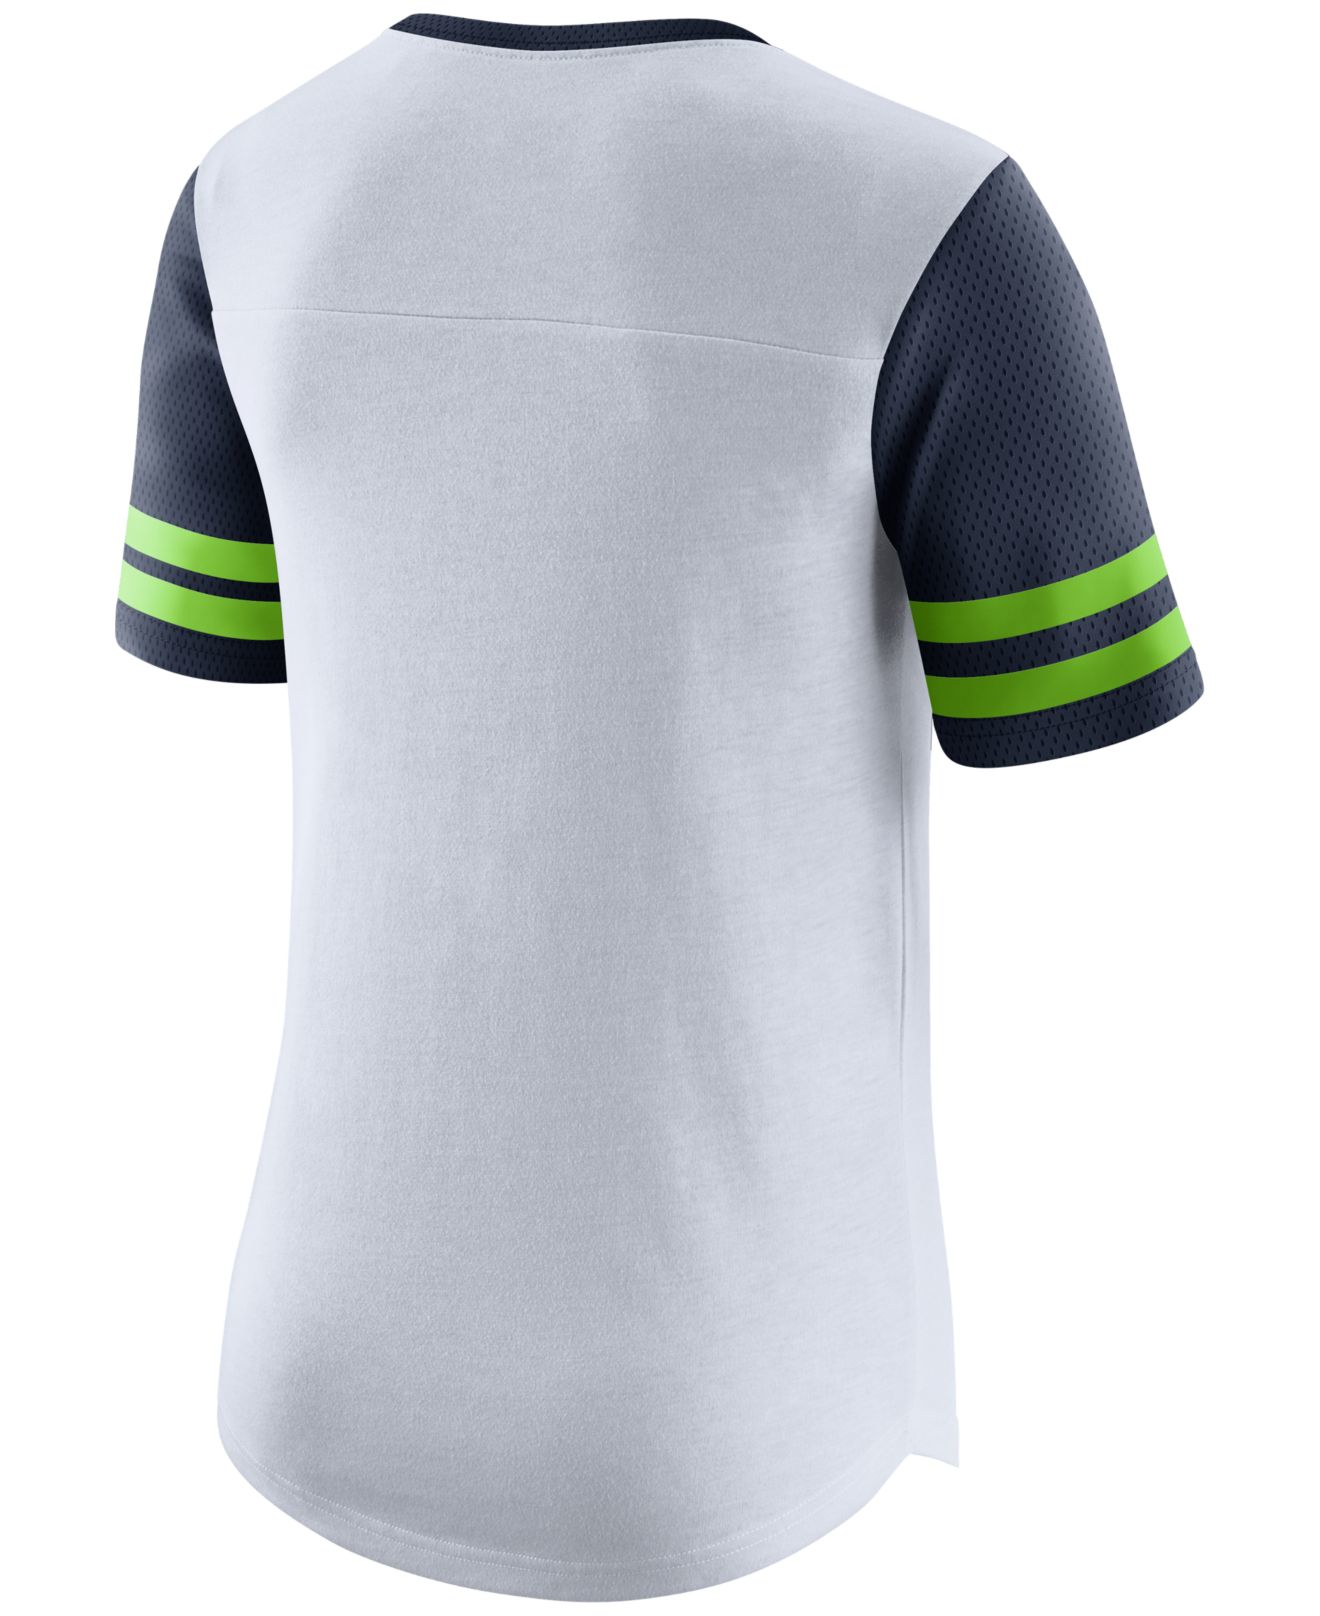 The waiting was the hardest part, but now you can have all the Seattle Seahawks Apparel you want. The Official Seattle Seahawks Fan Shop has Nike Seahawks Gear for every man, woman and kid Orange Crush fan. We carry the Nike Seattle Seahawks T-Shirts, as well as Shorts, Polos and New Era Hats, too. All of this Seattle Seahawk Nike Clothing.